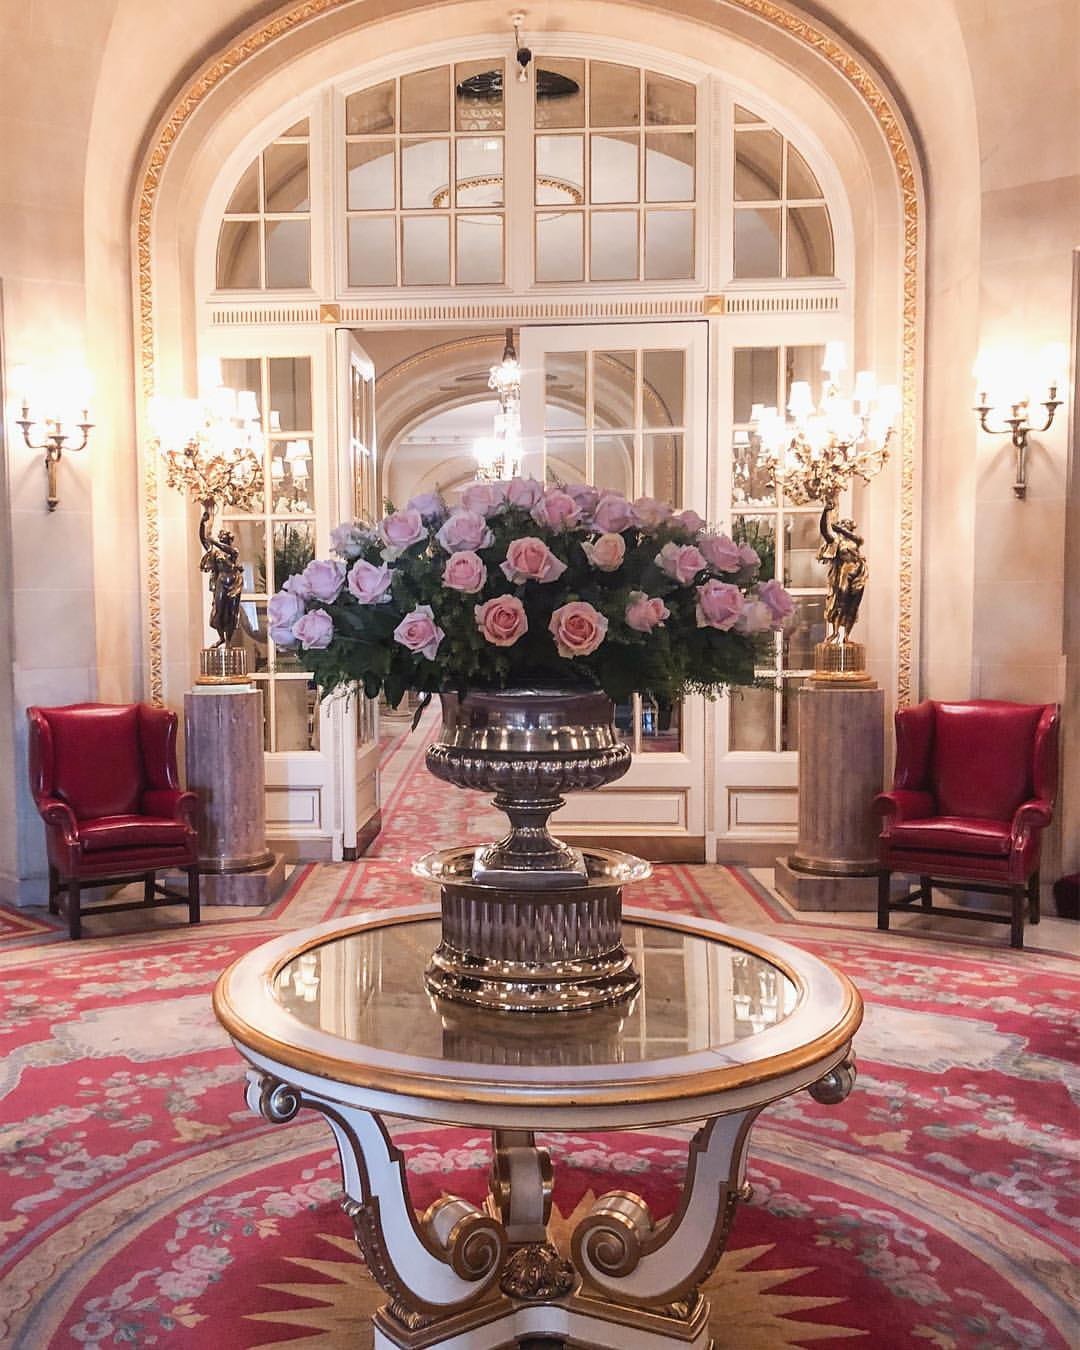 The ritz London roses